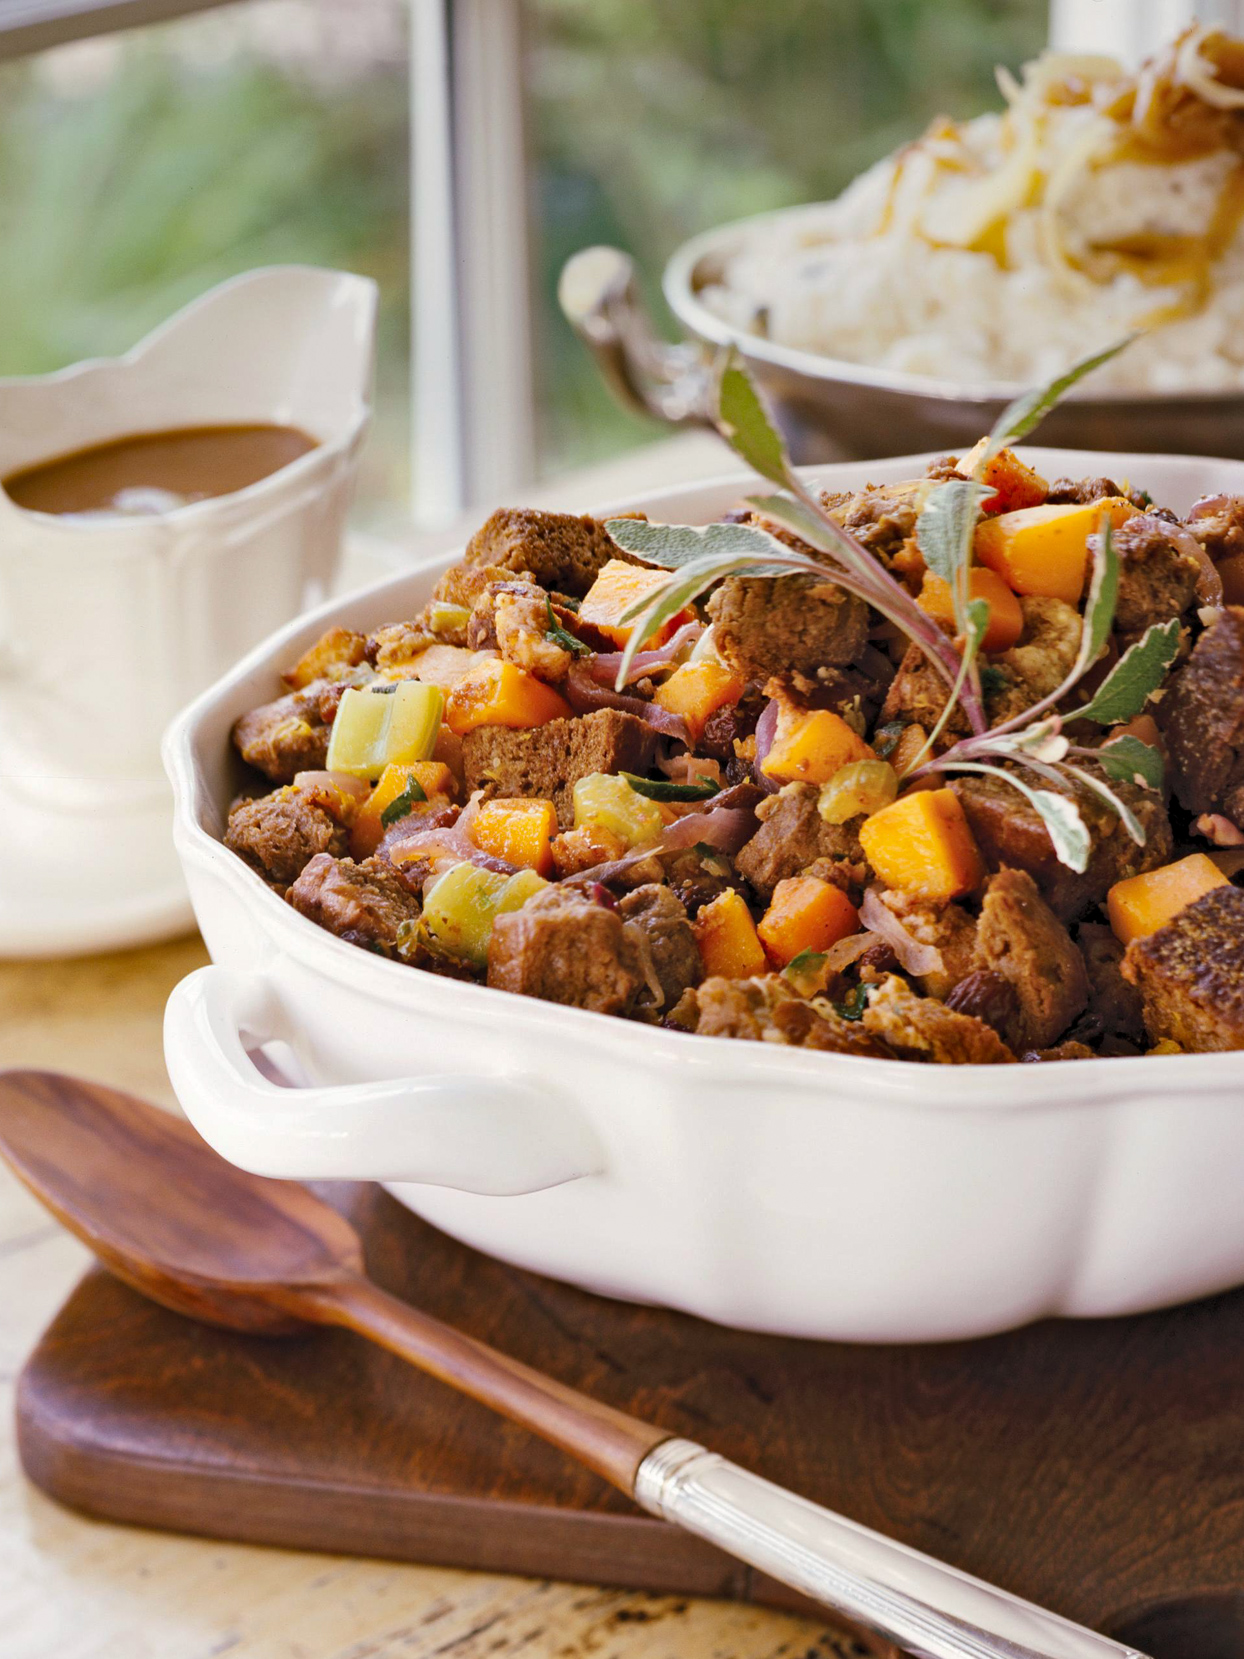 Winter Squash and Brown Bread Stuffing